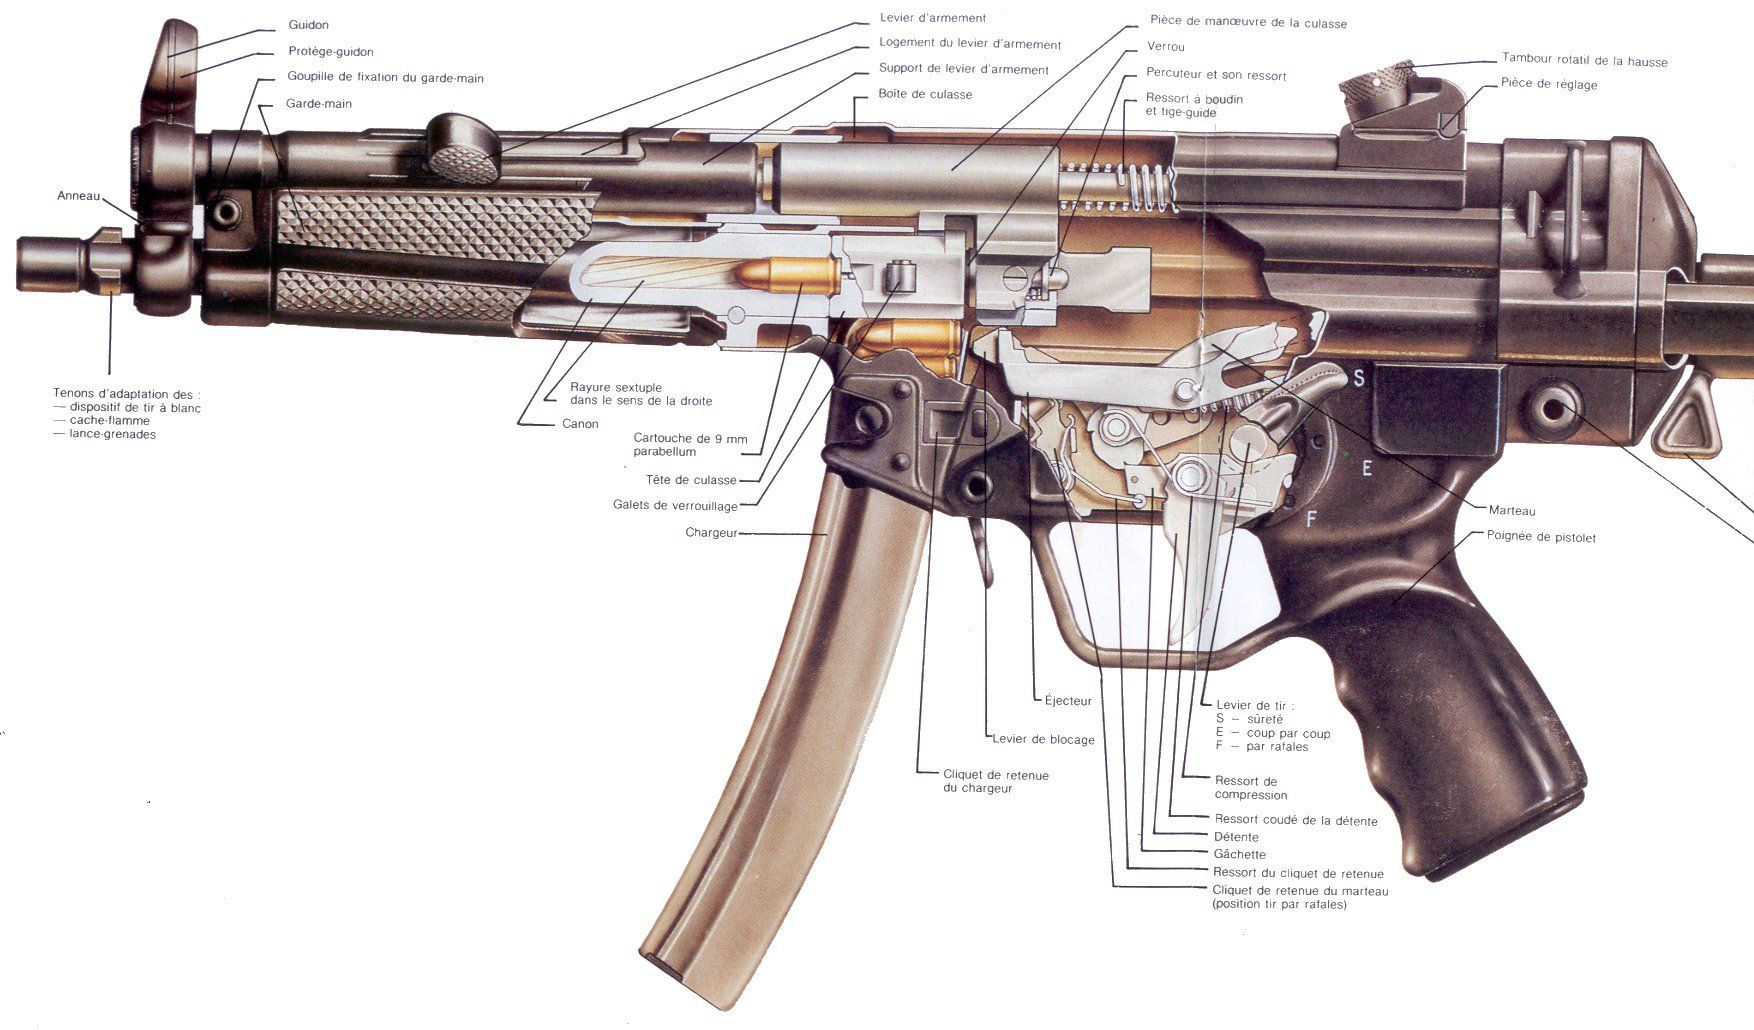 Cz 83 diagramloading that magazine is a pain get your magazine cz 83 diagramloading that magazine is a pain get your magazine speedloader today httpamazonshopsraeind guns pinterest diagram pooptronica Images